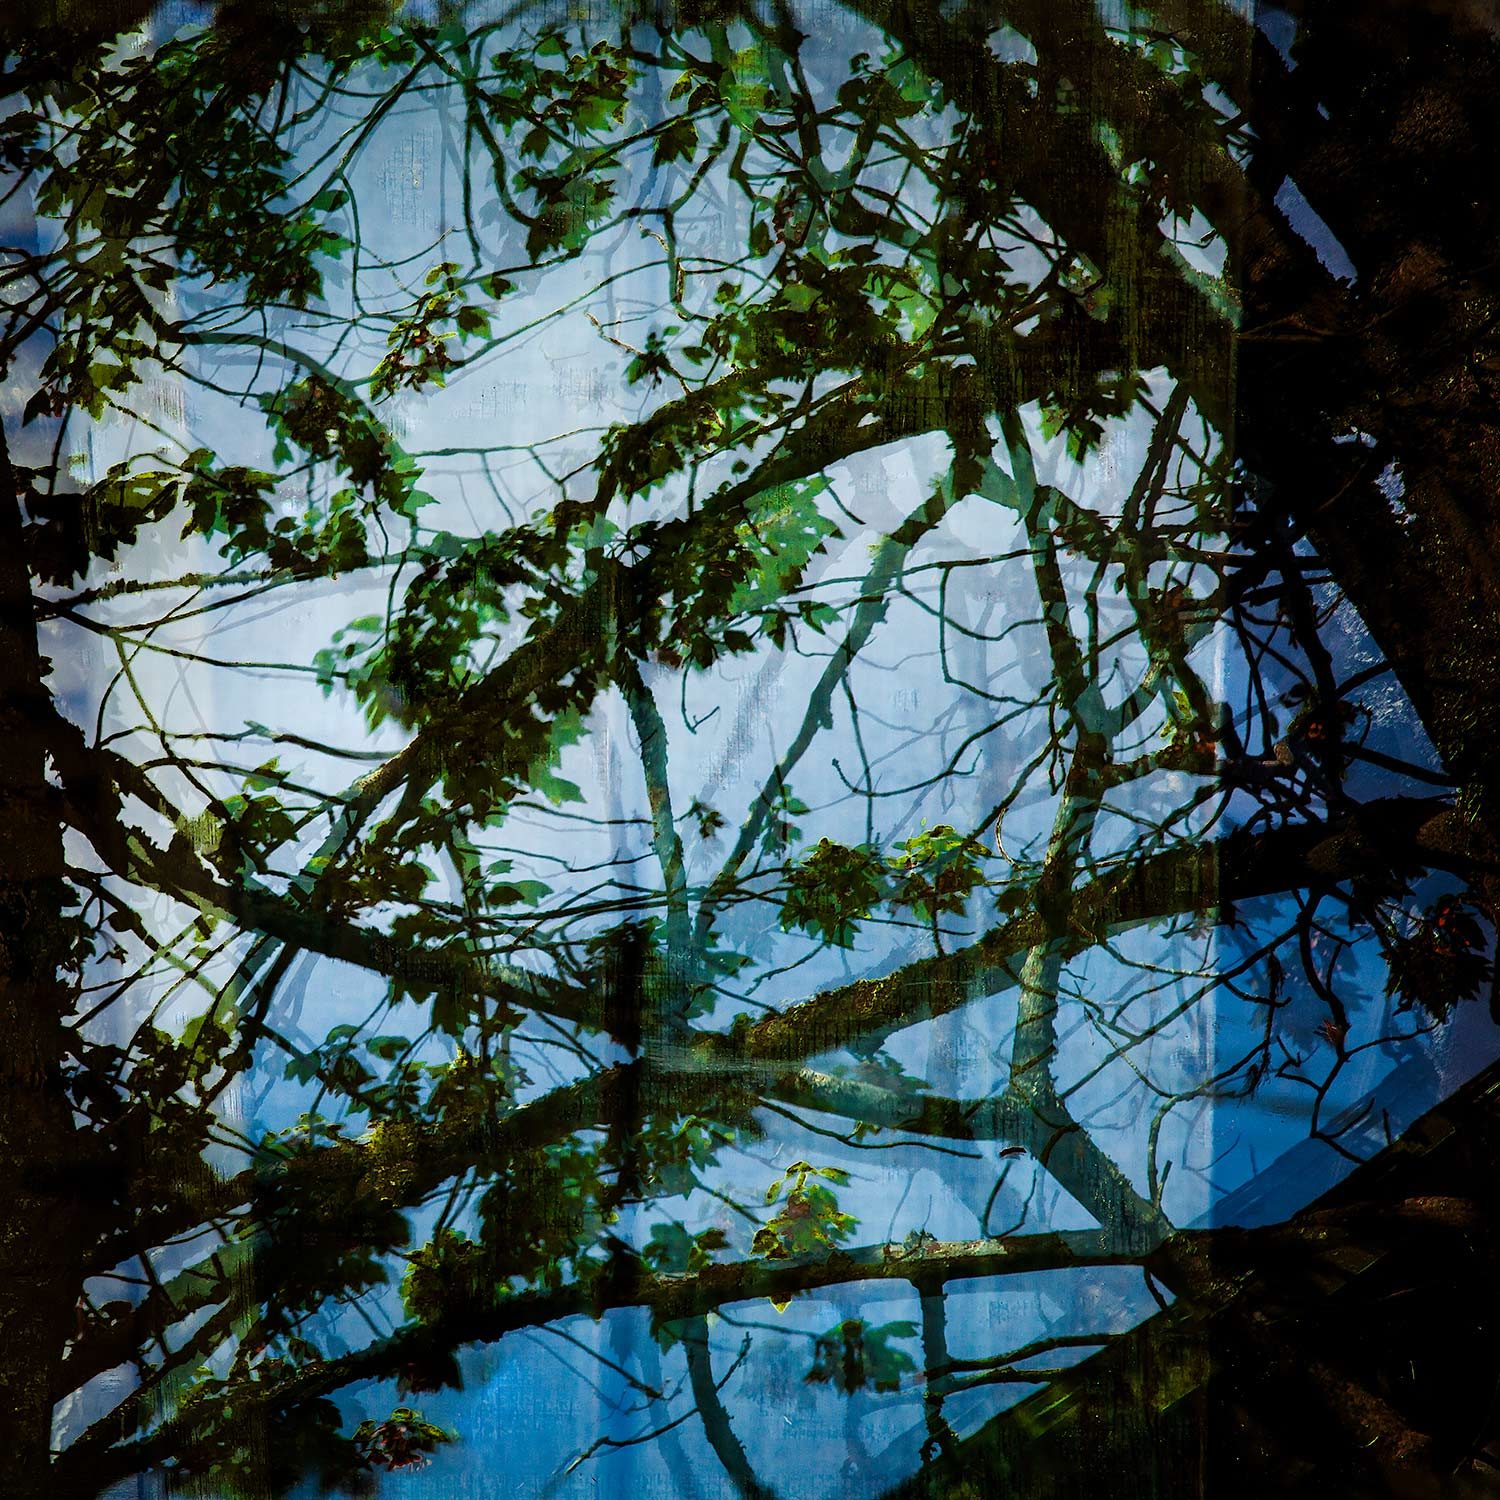 Branches and Plastic, Bar Harbor, Maine, 2014